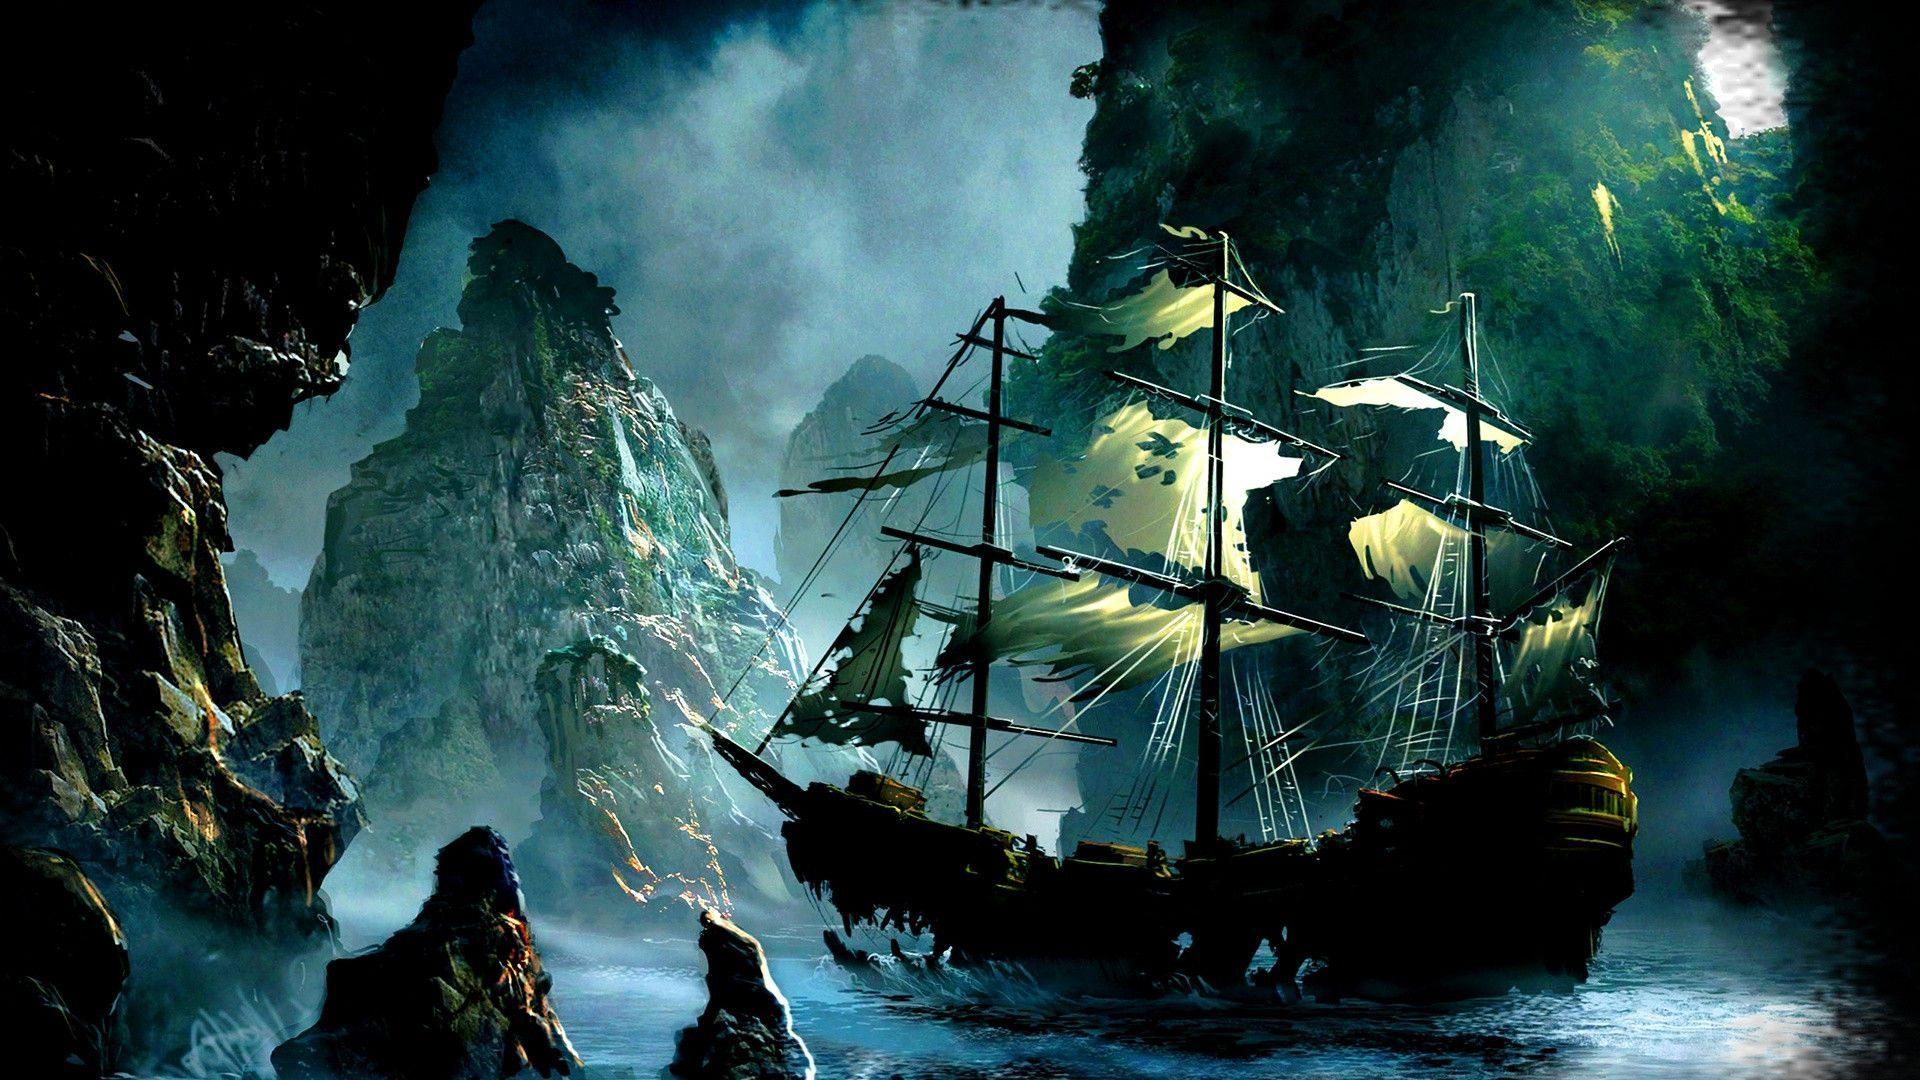 Ghost Pirate Ship Wallpapers Mobile for Background Wallpaper Real 1920x1080